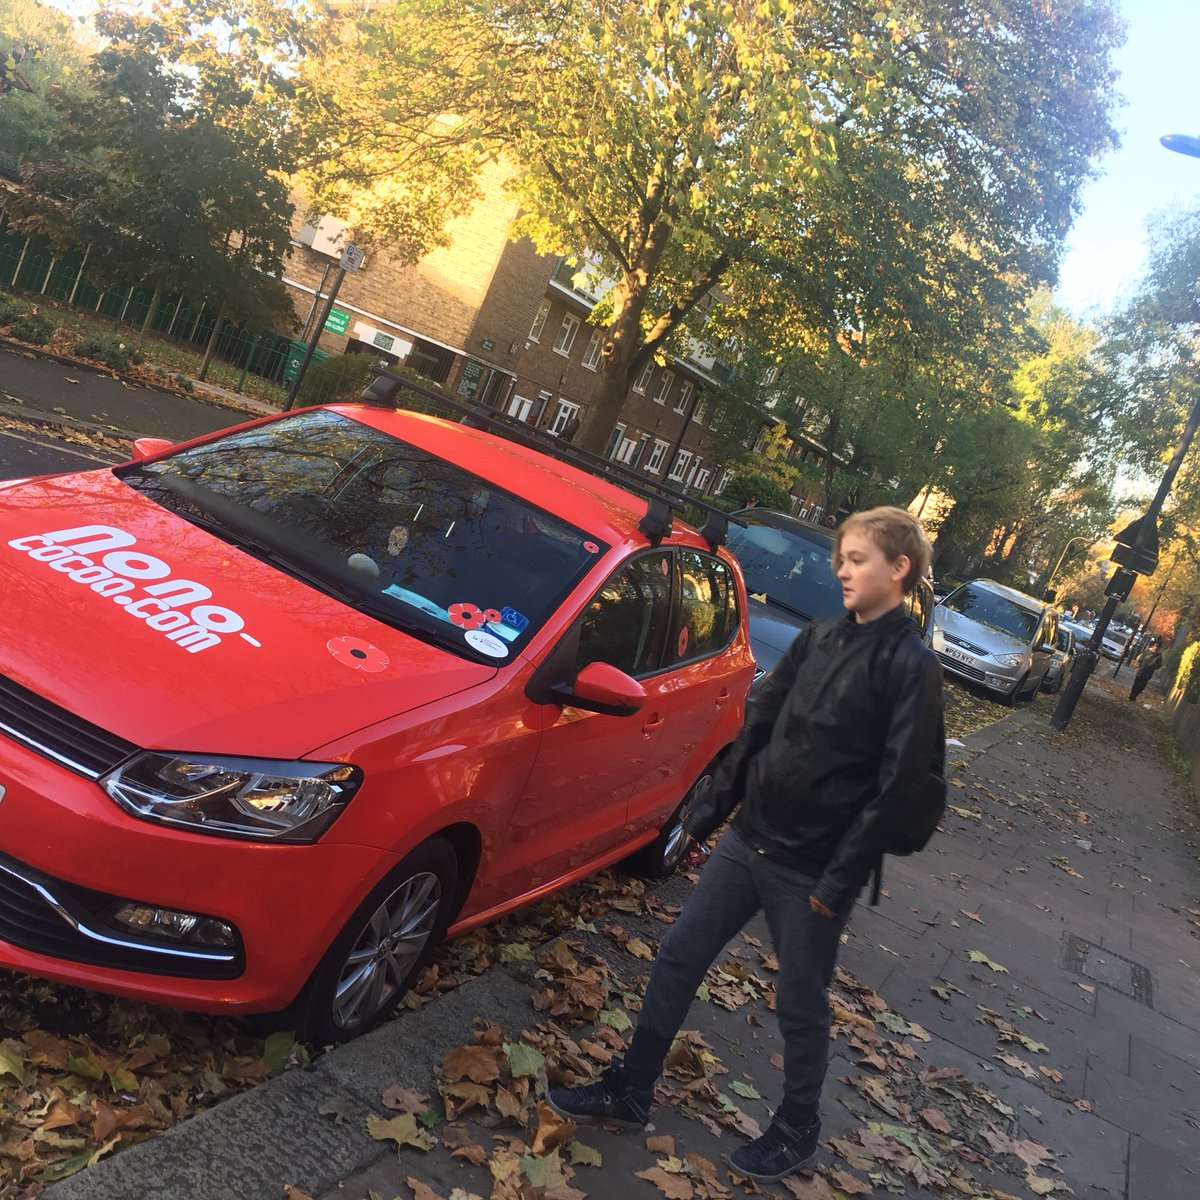 #nono car was covered with poppies the past weekend #PoppyAppeal #poppyappeal2017 #remembranceday<br>http://pic.twitter.com/r2unxESRO8